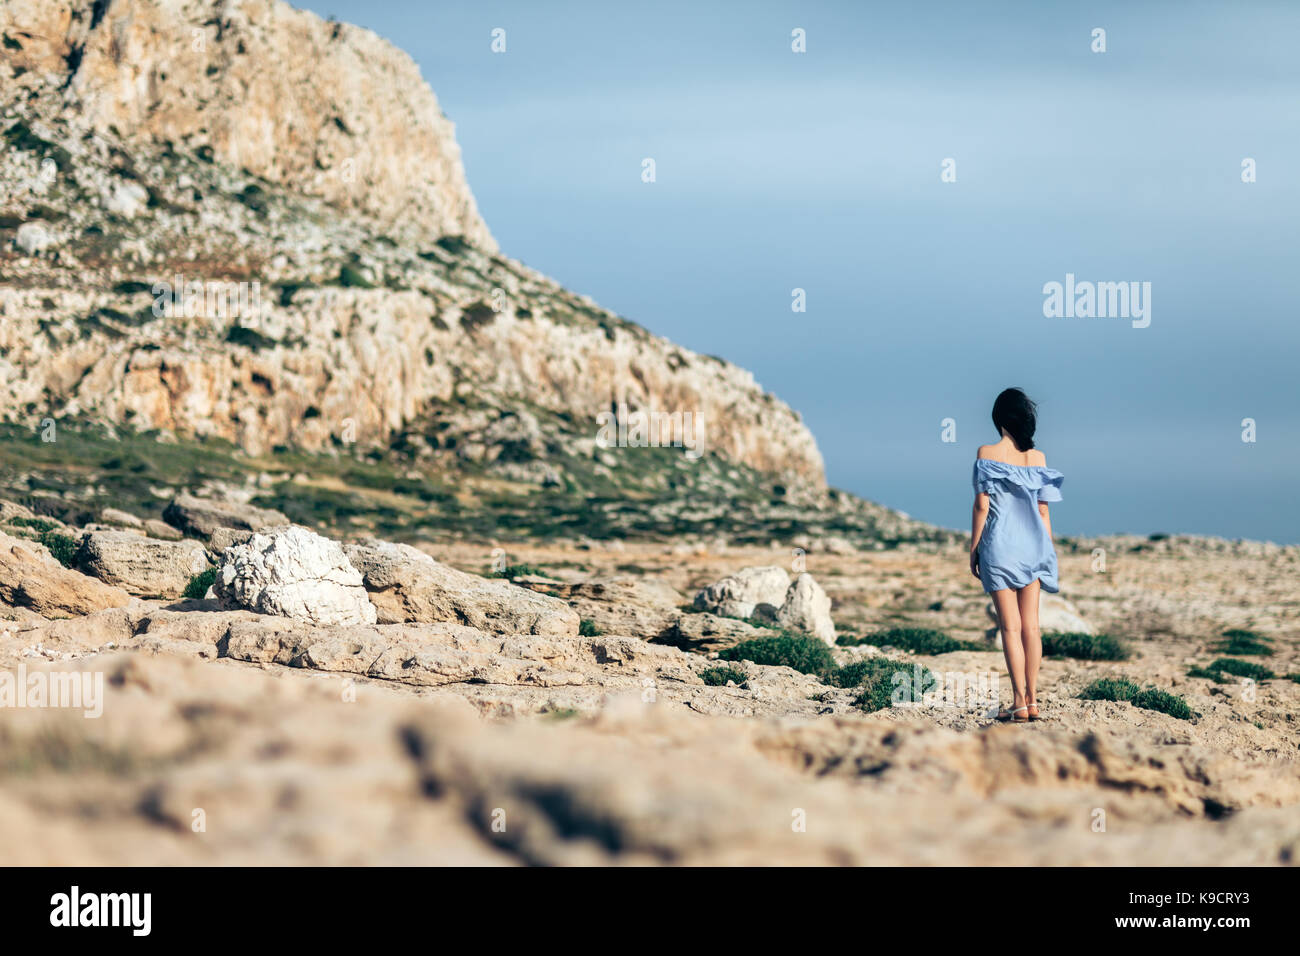 Back view of lonely woman walking on rocky desert with dramatic sky - Stock Image